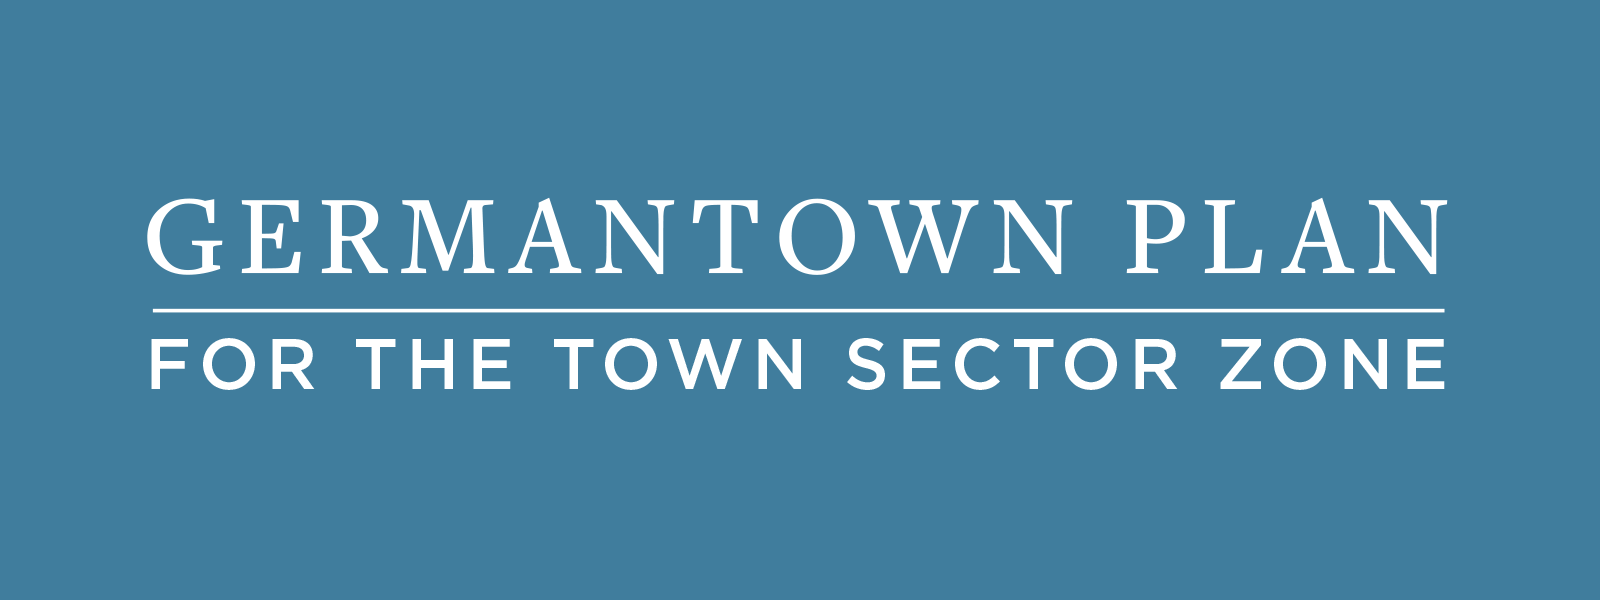 Germantown Plan for the Town Sector Zone Approved